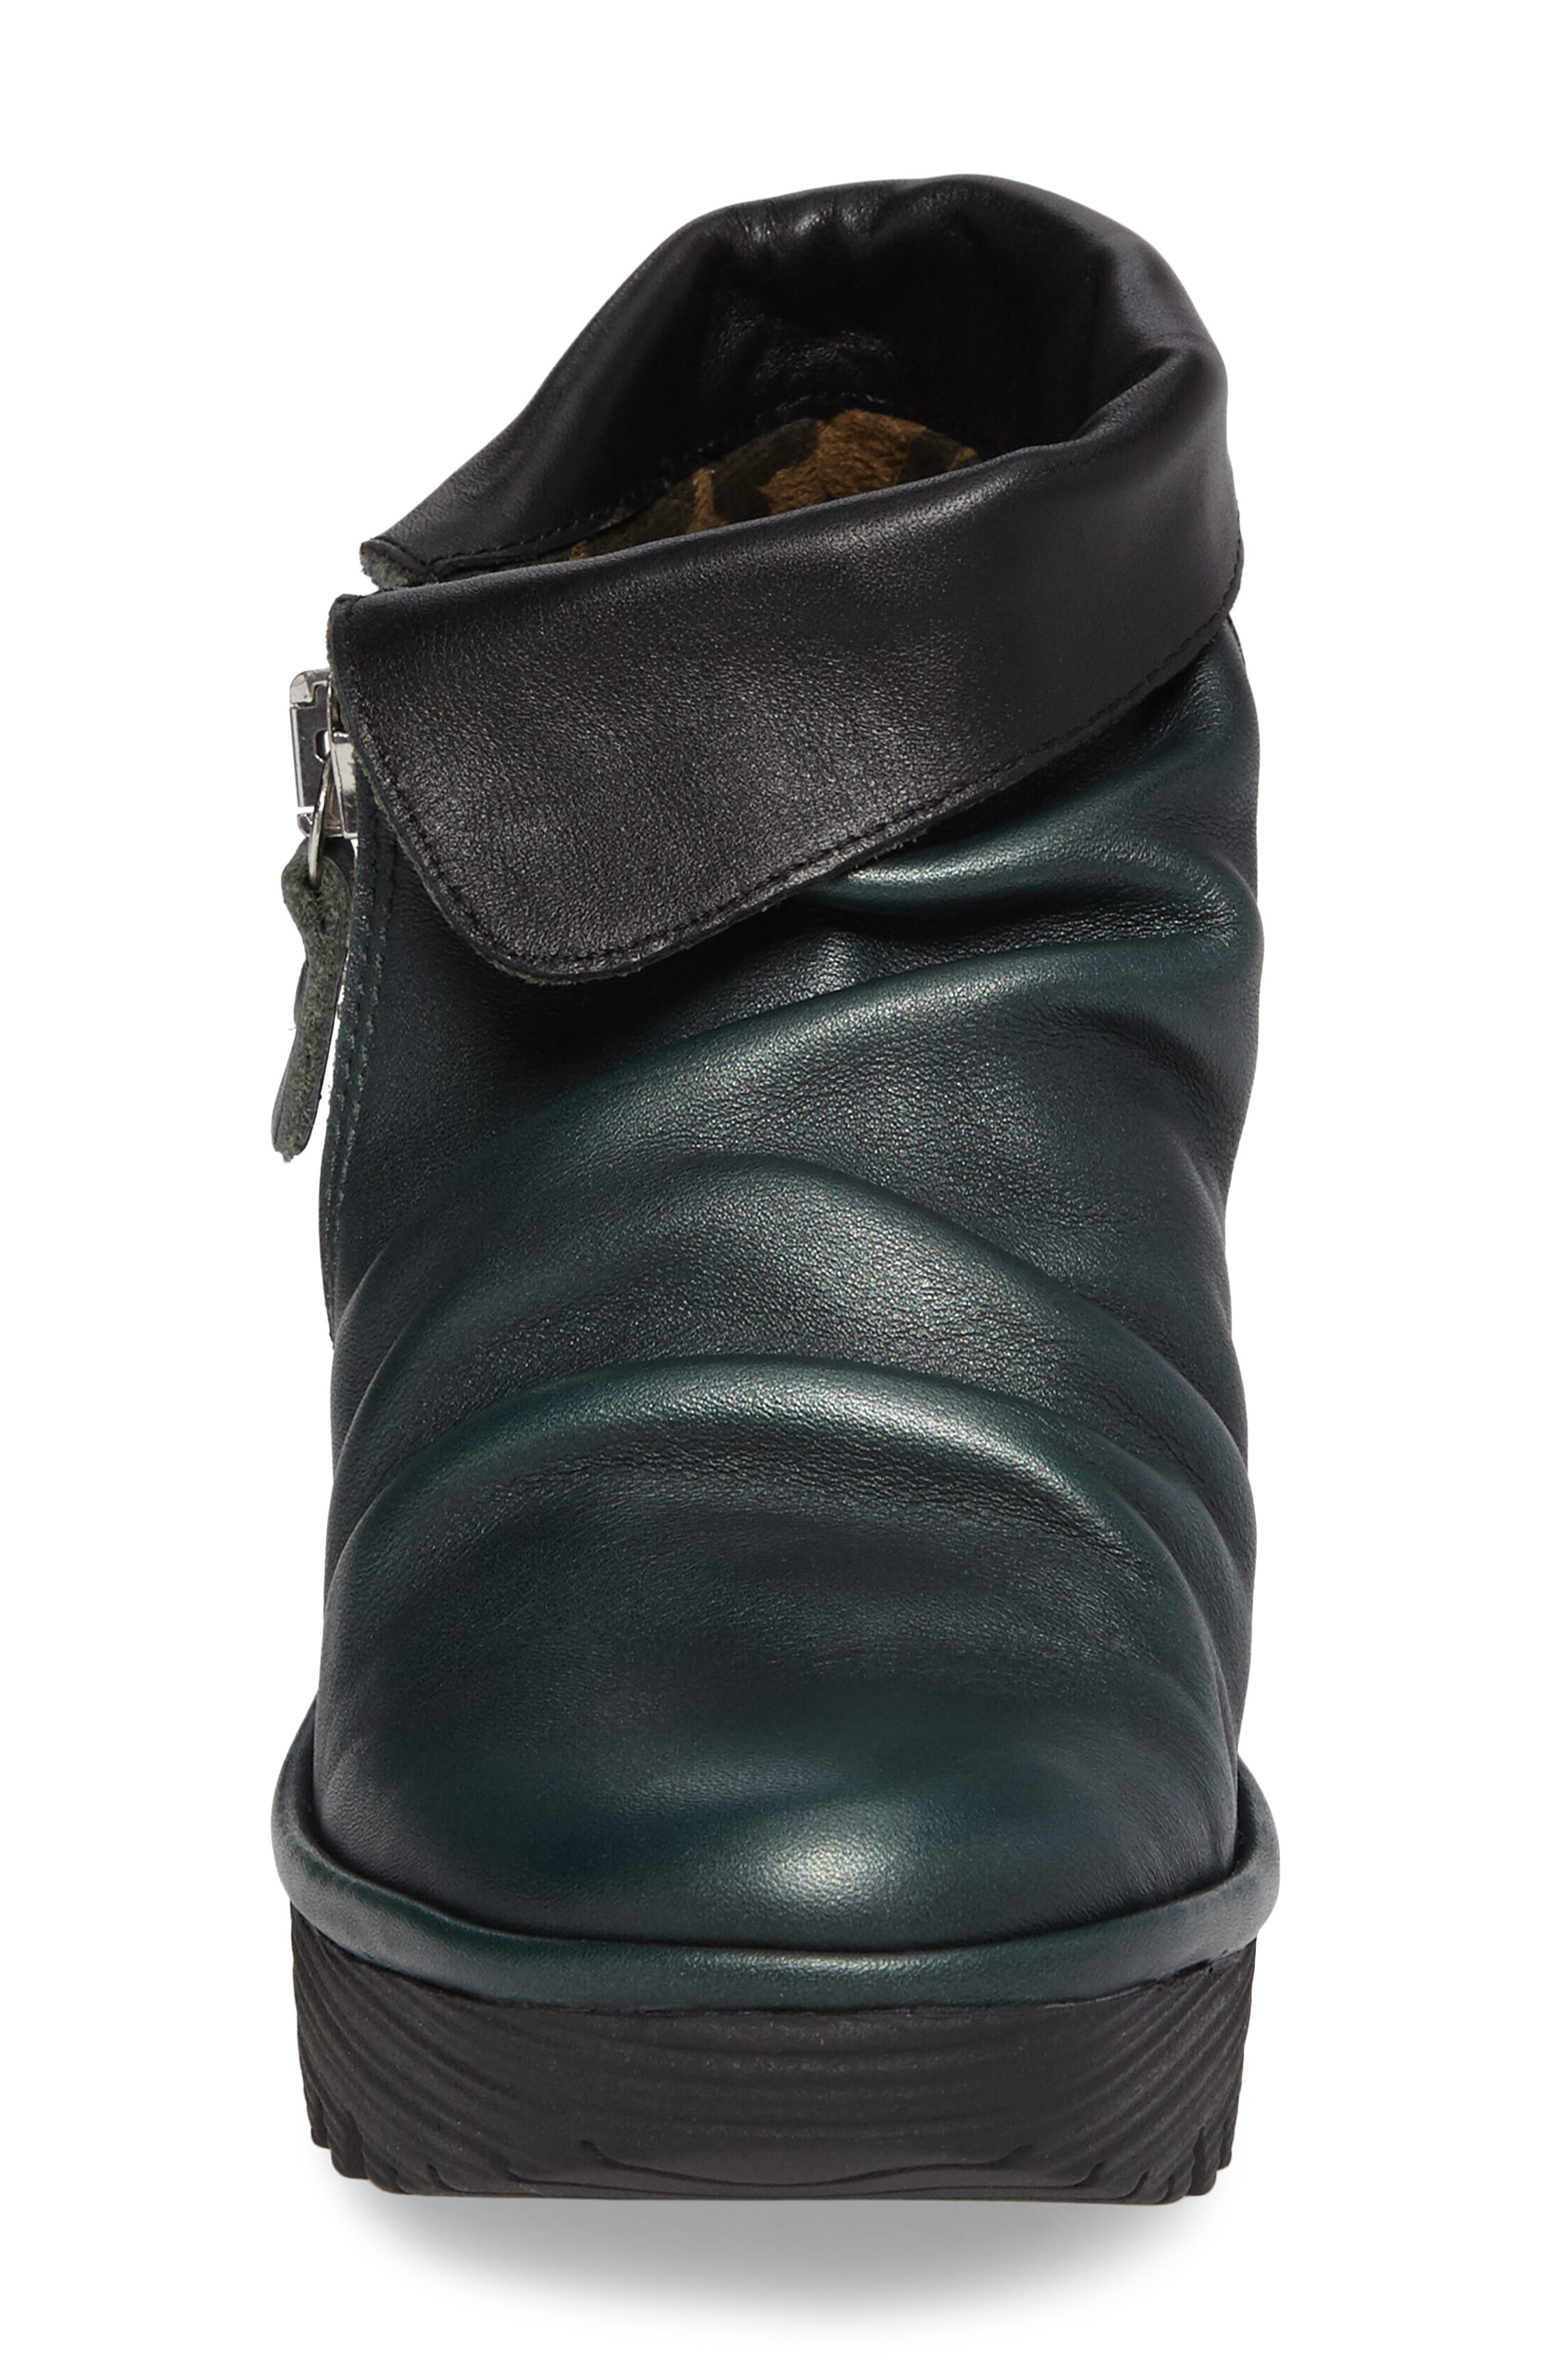 Yoxi Wedge Bootie,                             Alternate thumbnail 4, color,                             Seaweed Leather